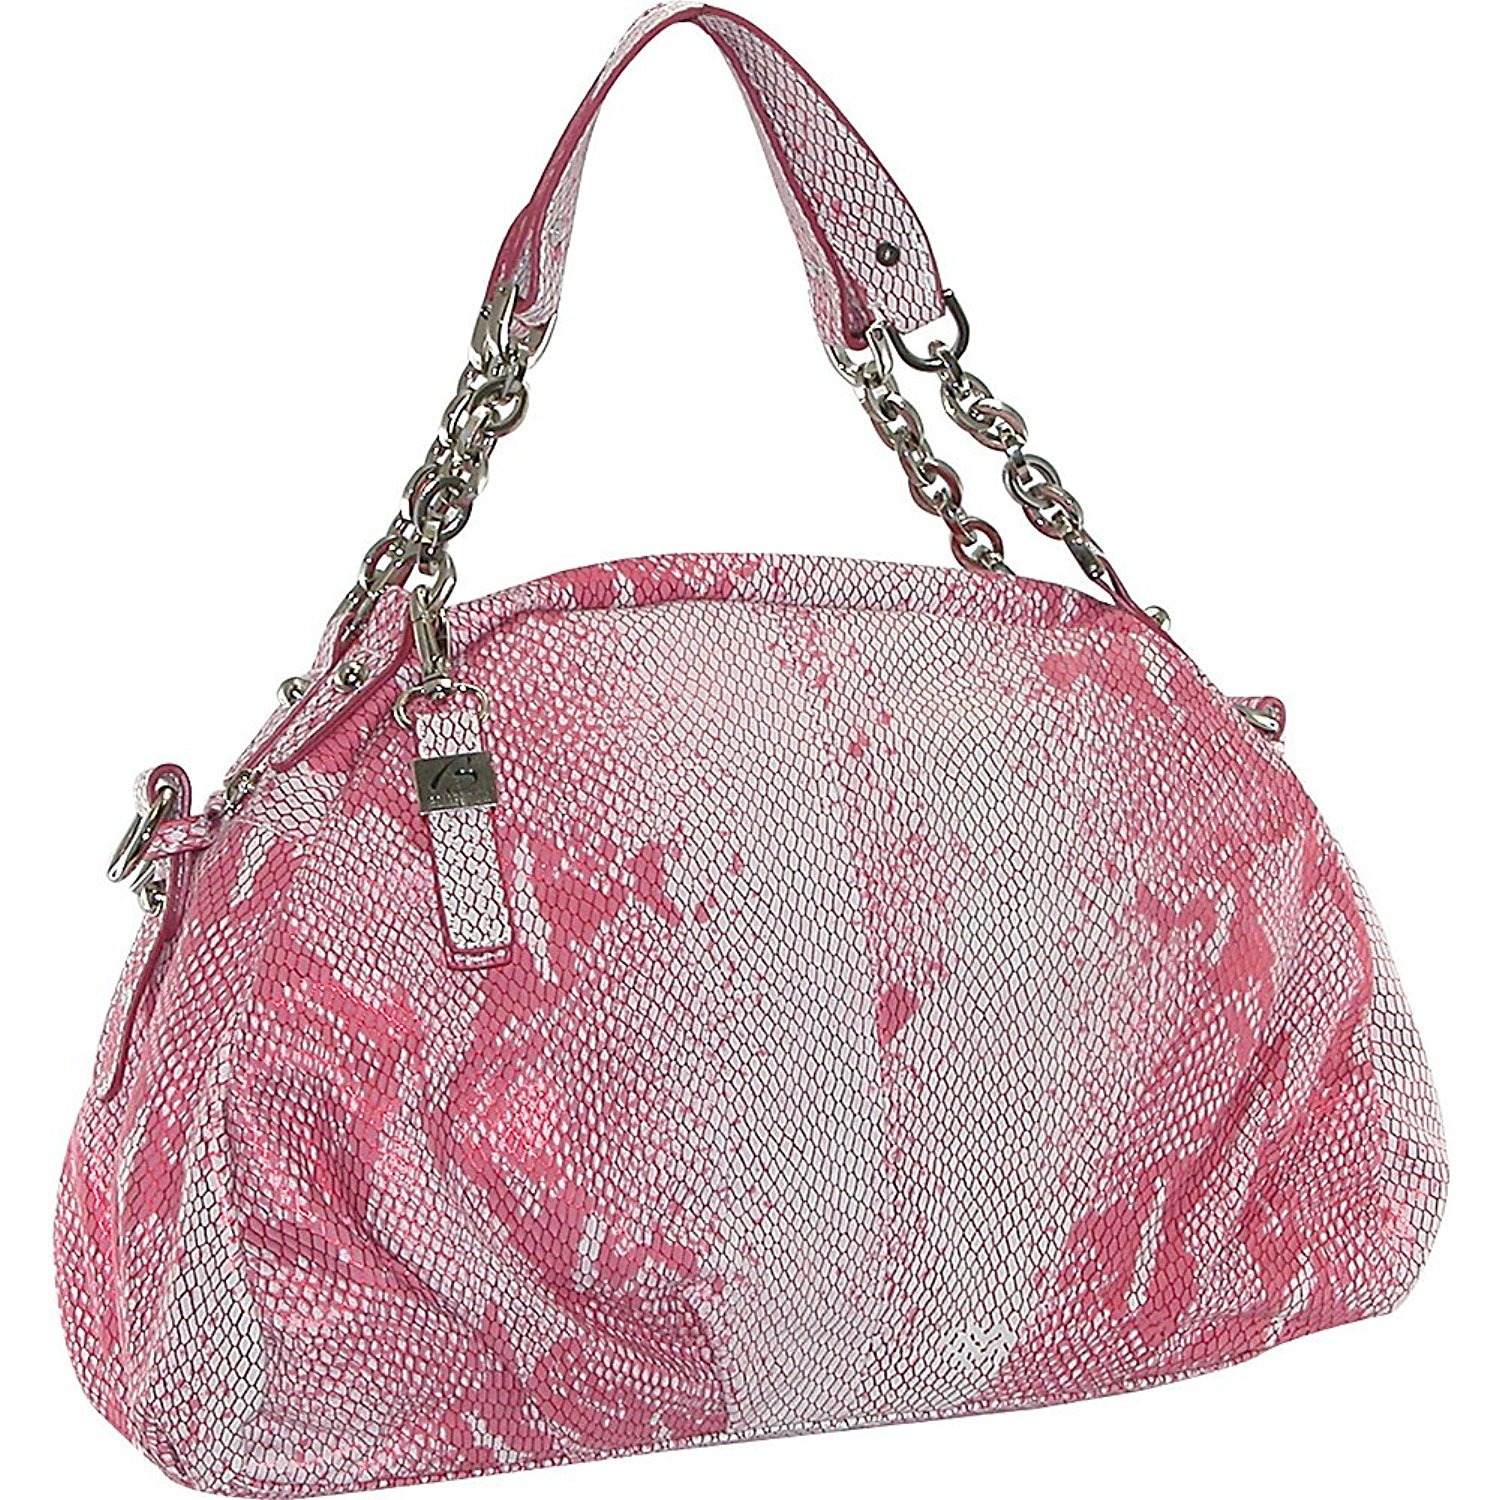 Get Quotations · Buxton Metallic Embossed Snake Skin Hobo (Rose) 5a739c1a9b